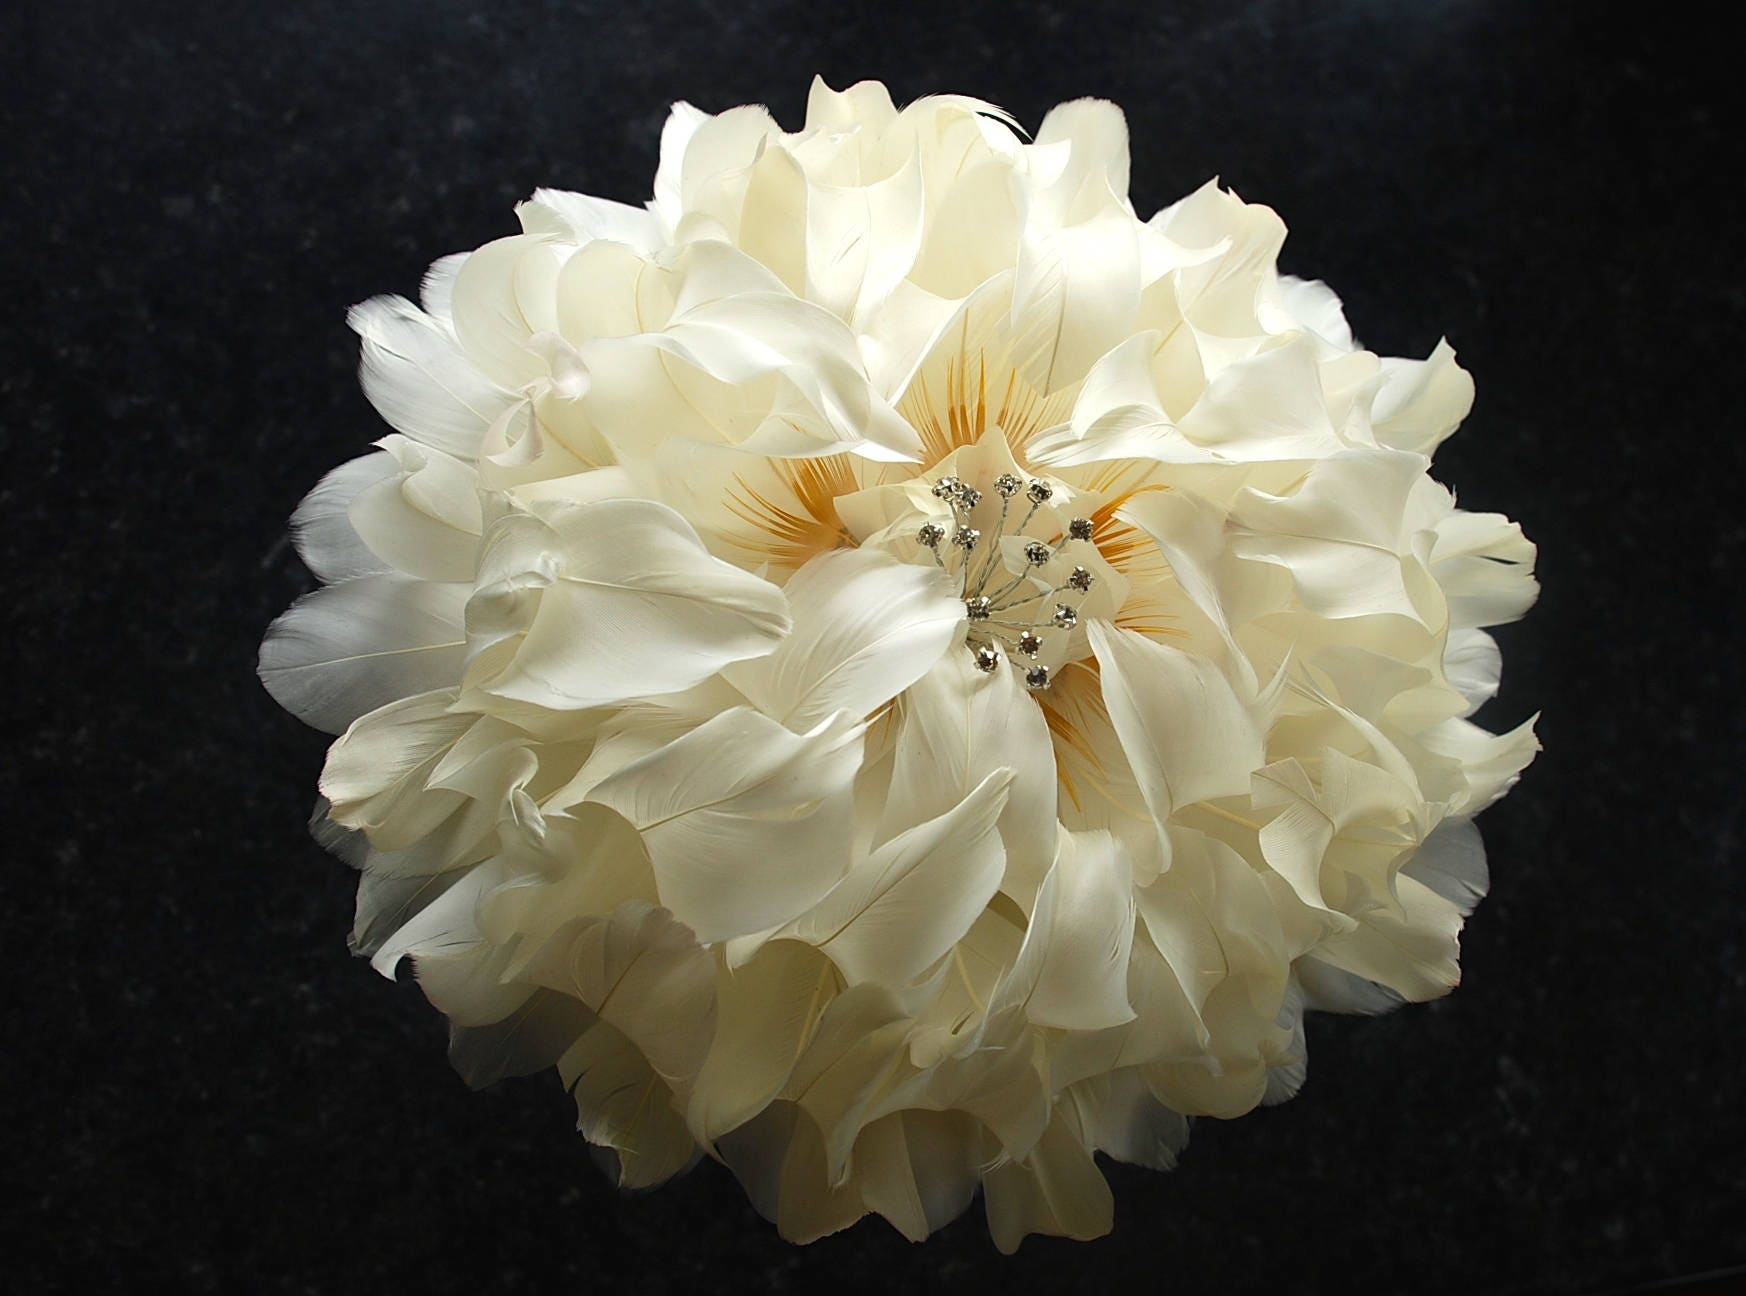 Giant peony wedding bouquet ivory feather flower bridal bouquet giant peony wedding bouquet ivory feather flower bridal bouquet brides bouquet feather flower wedding flowers diamonte izmirmasajfo